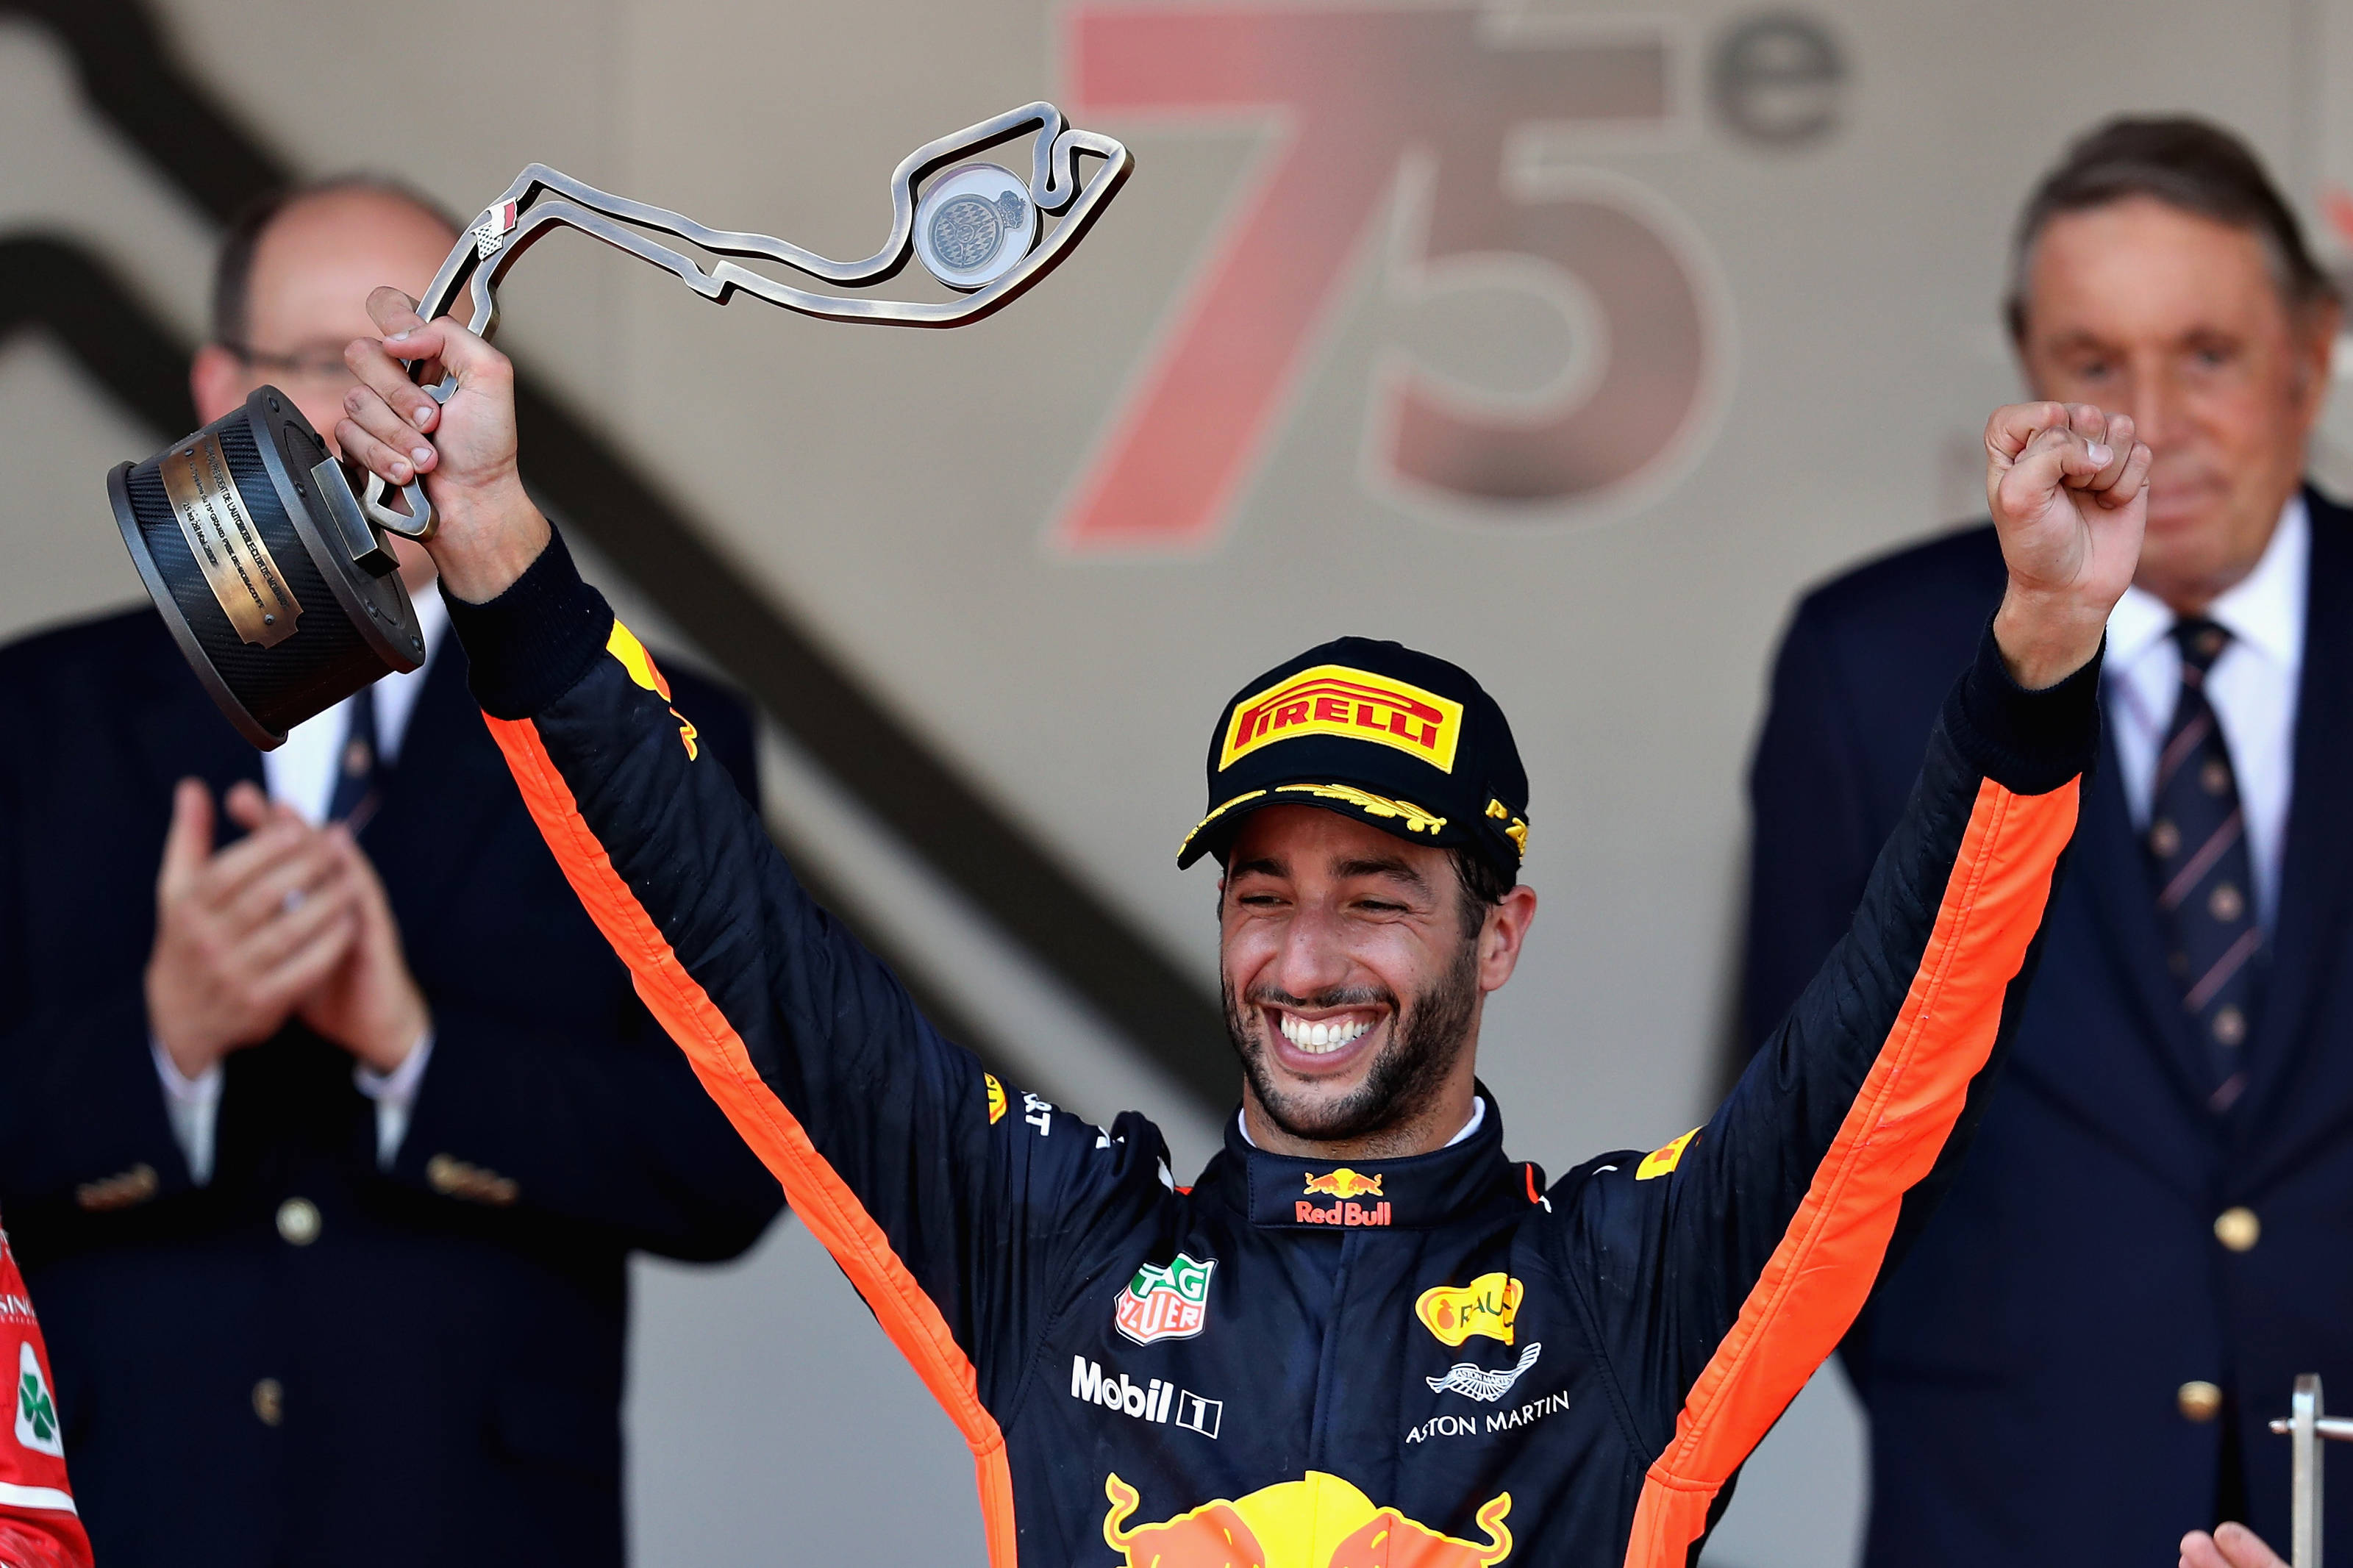 A delighted Daniel Ricciardo shows his trophy on the podium at Monaco. Picture: Getty Images